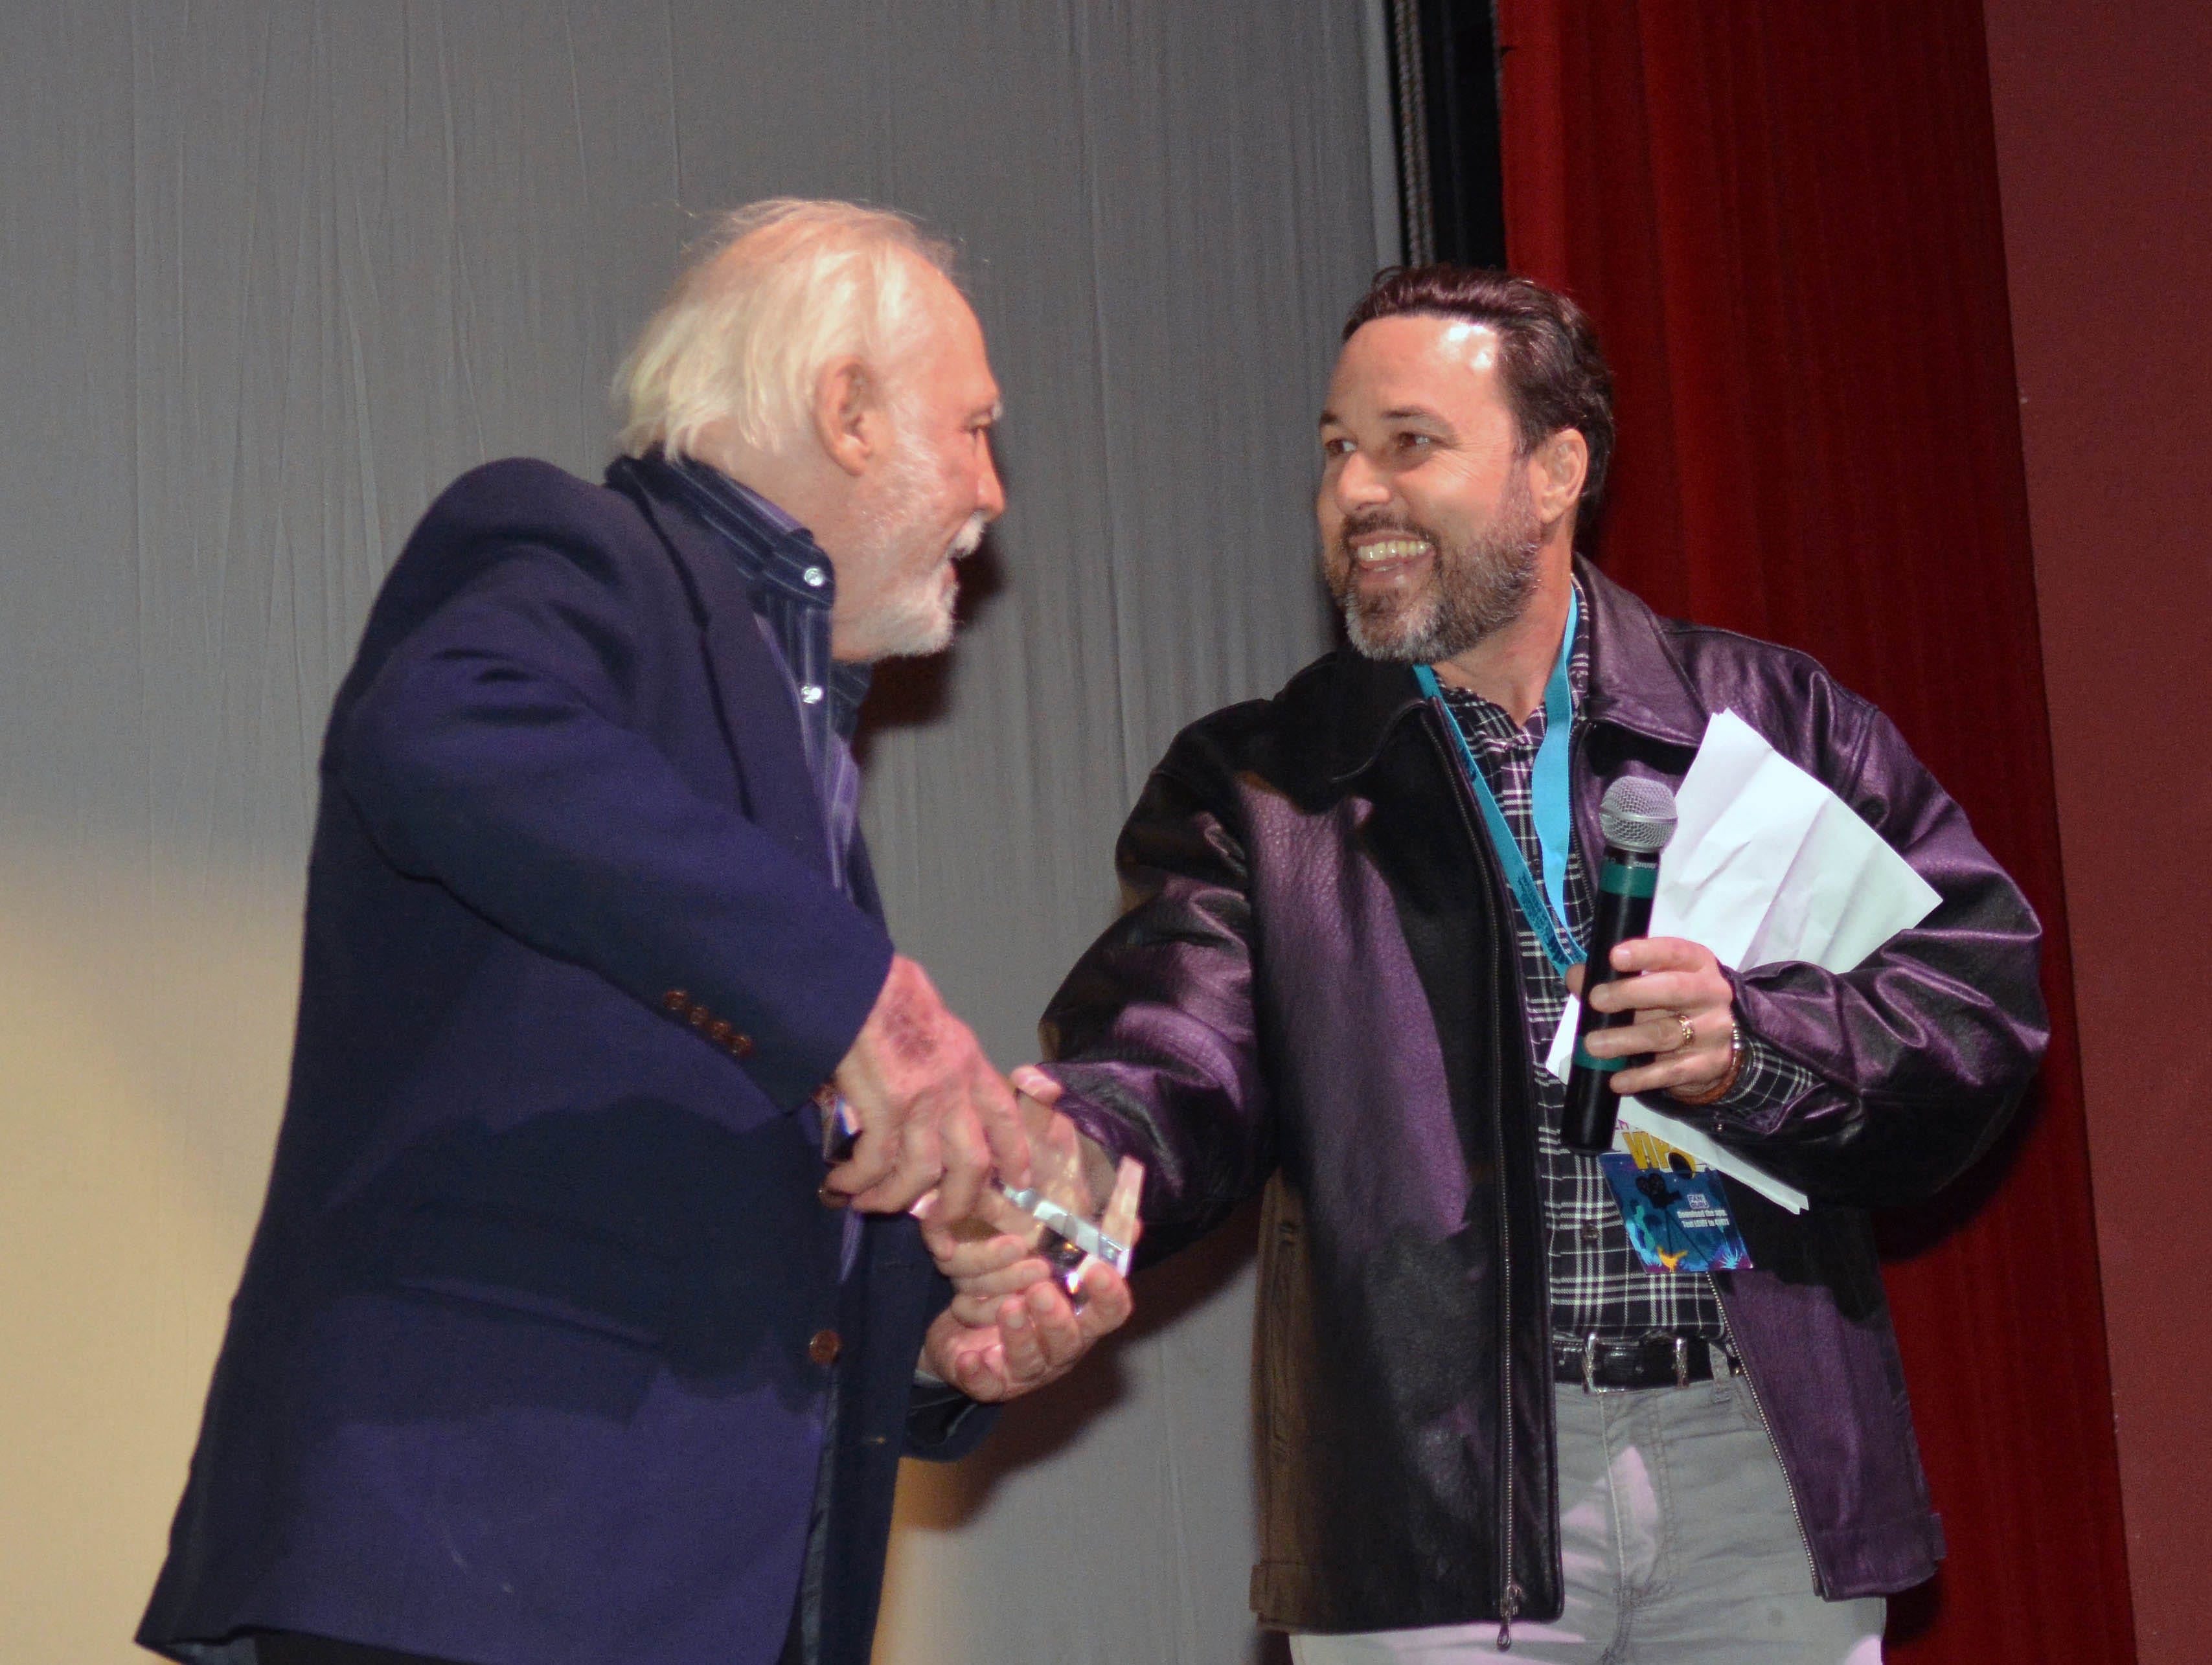 """Robert M. Young, left, receives the LCIFF Auteur Award from Las Cruces International Film Festival Director Ross Marks on Tuesday at the Rio Grande Theatre, following a screening of Young's """"The Ballad of Gregorio Cortez."""""""